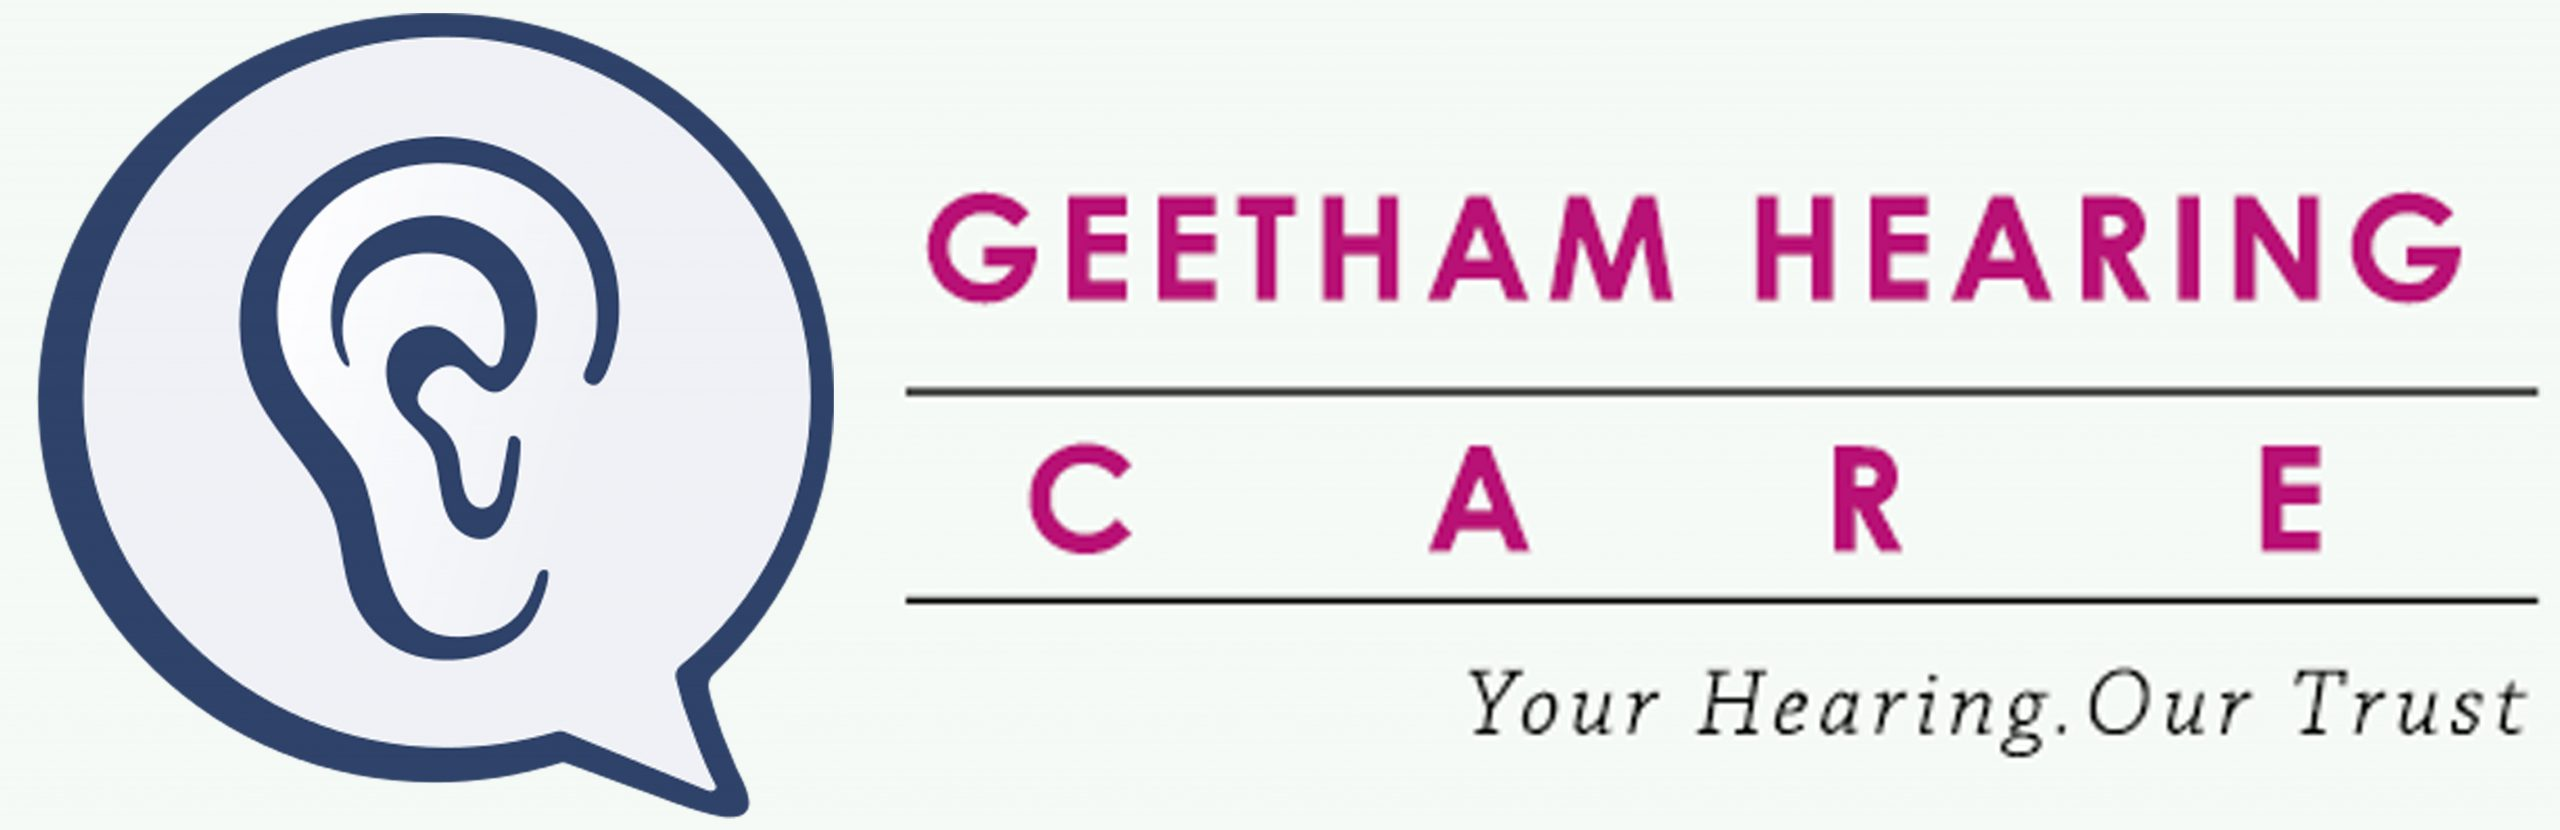 Geetham Hearing Care